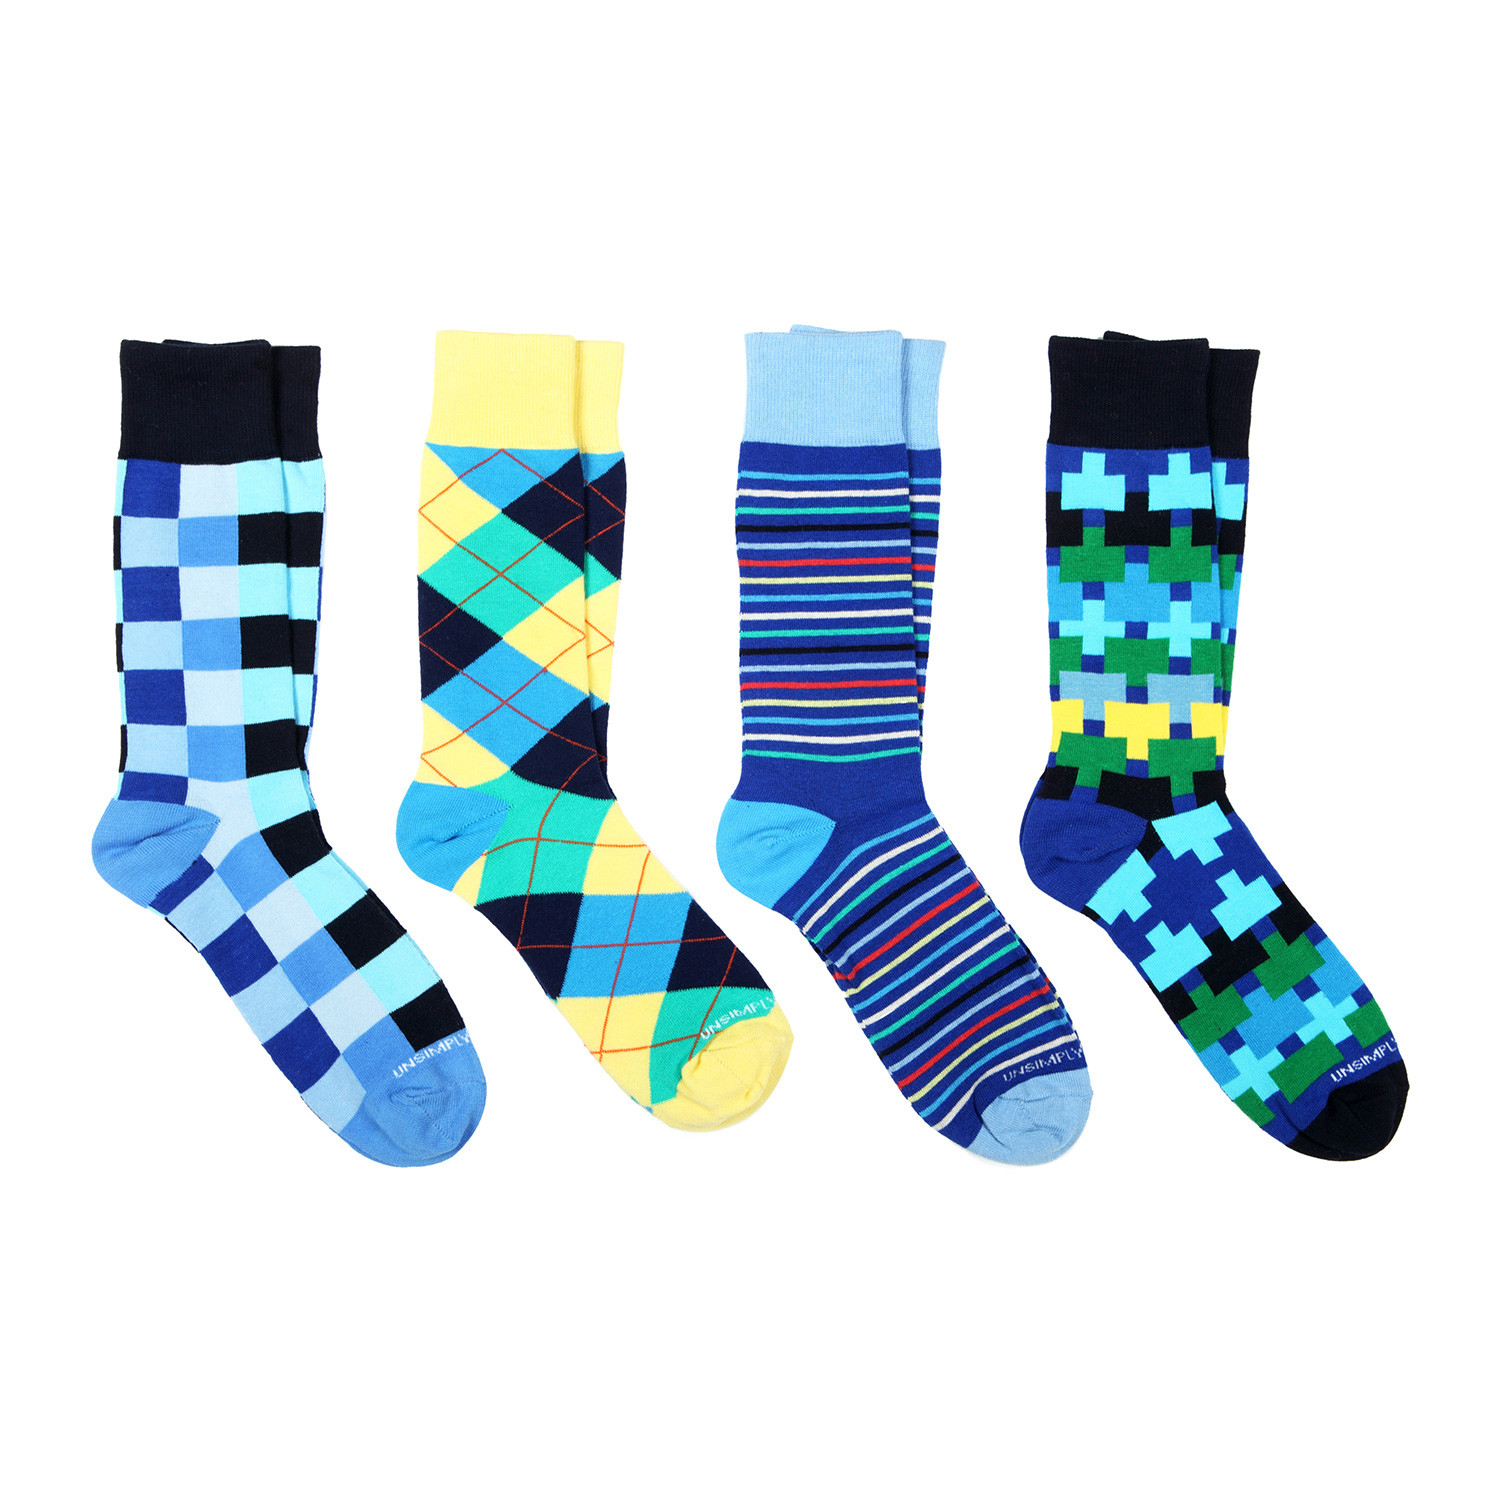 Dress socks blue mix pack of 4 unsimply stitched touch of